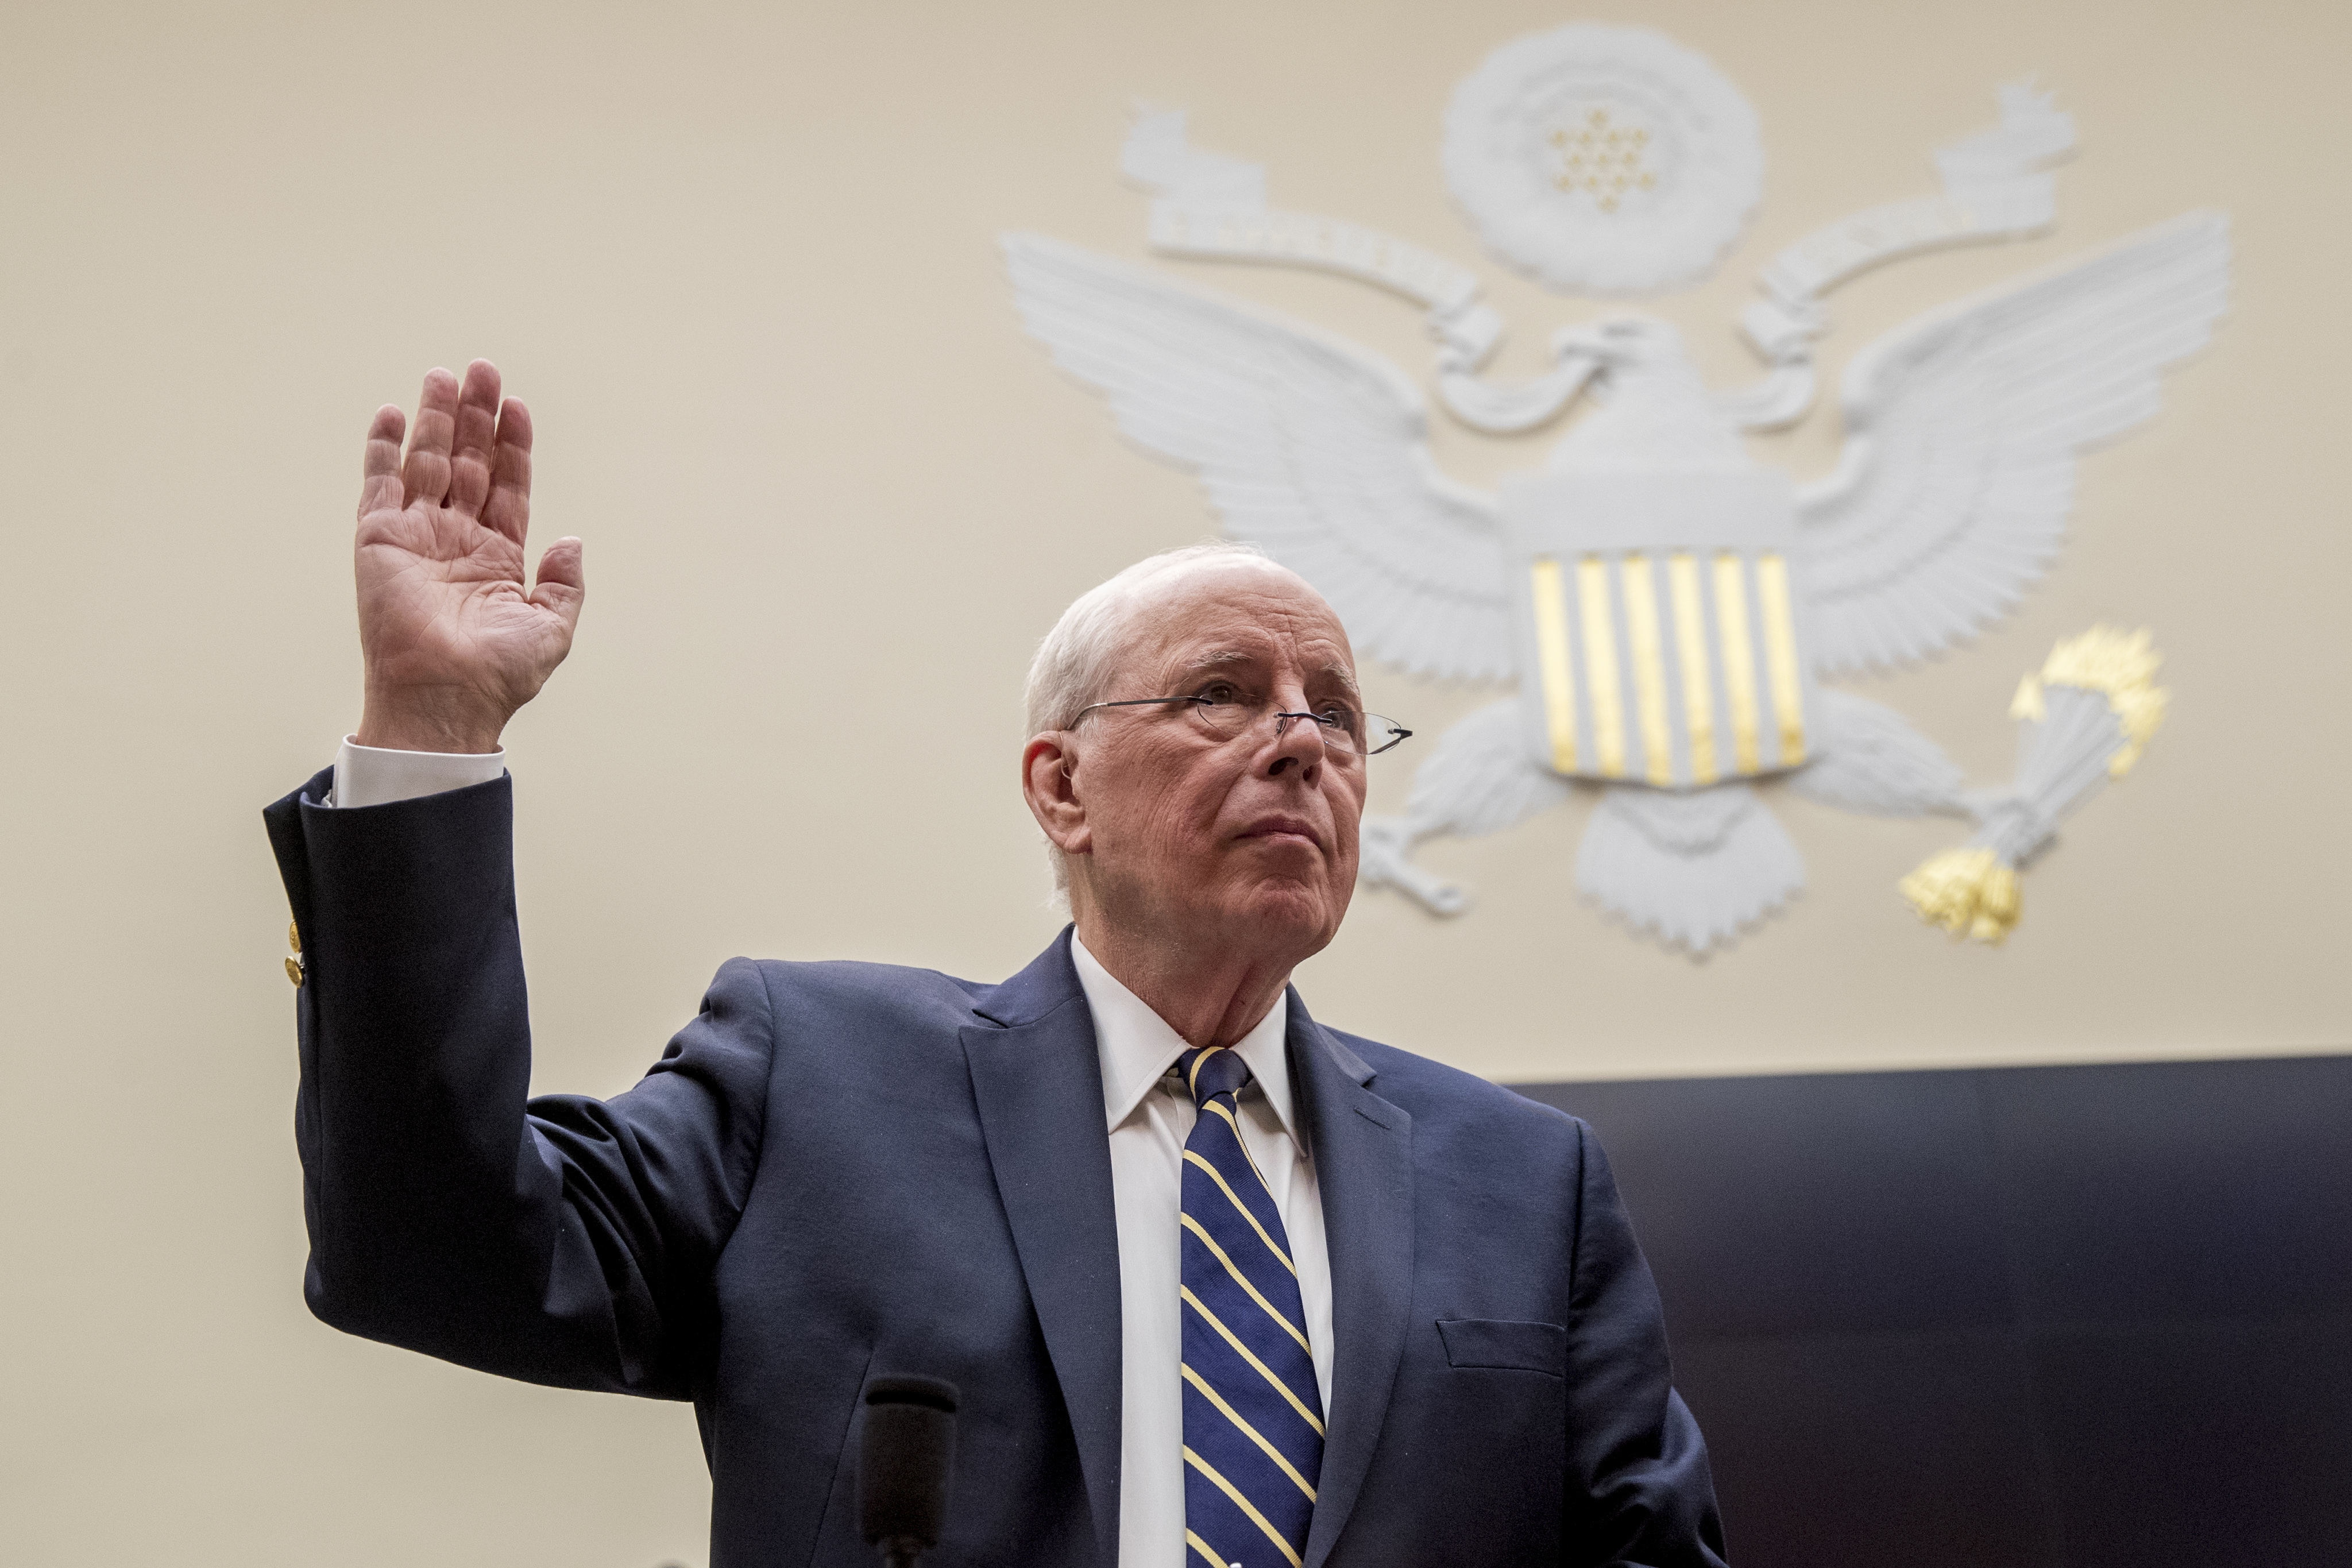 Former White House counsel for the Nixon administration John Dean is sworn in before a House Judiciary Committee hearing on the Mueller Report on Capitol Hill in Washington, Monday, June 10, 2019. (AP Photo/Andrew Harnik)